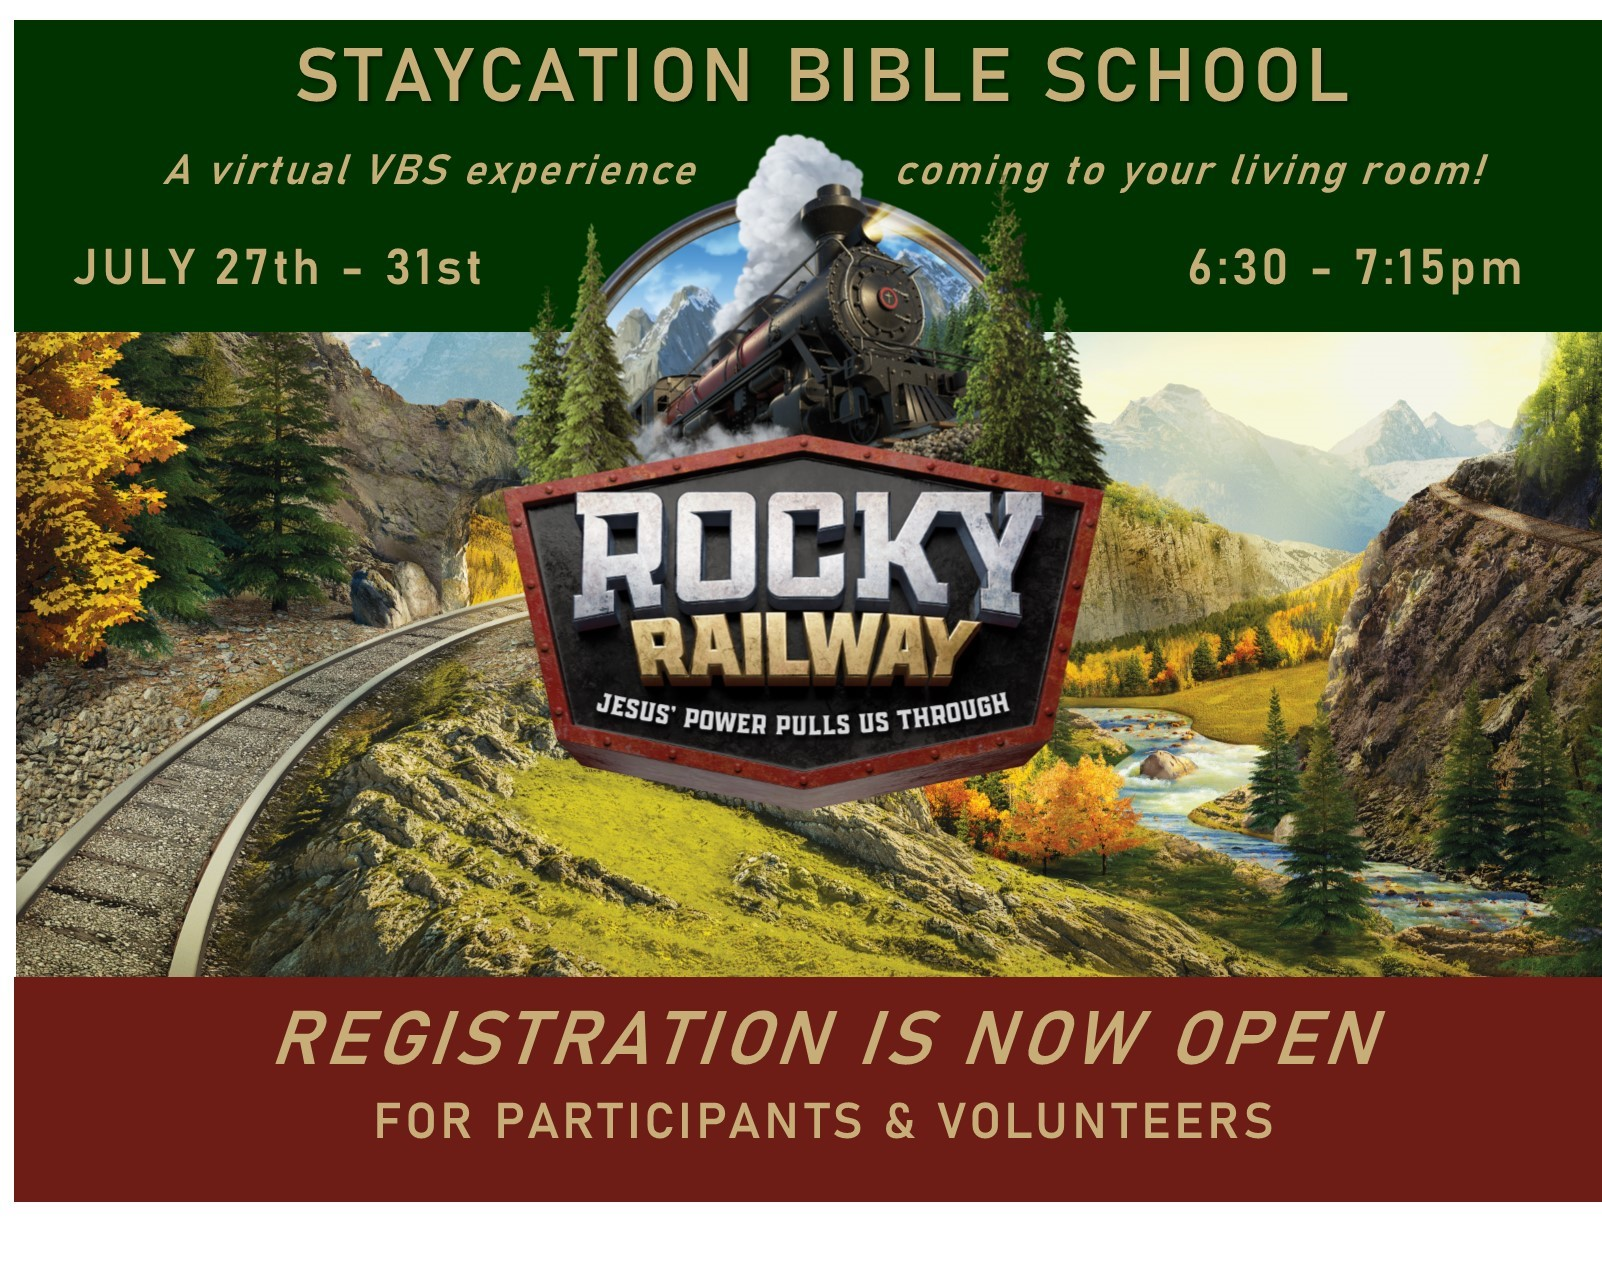 Online registration and information for VBS 2020